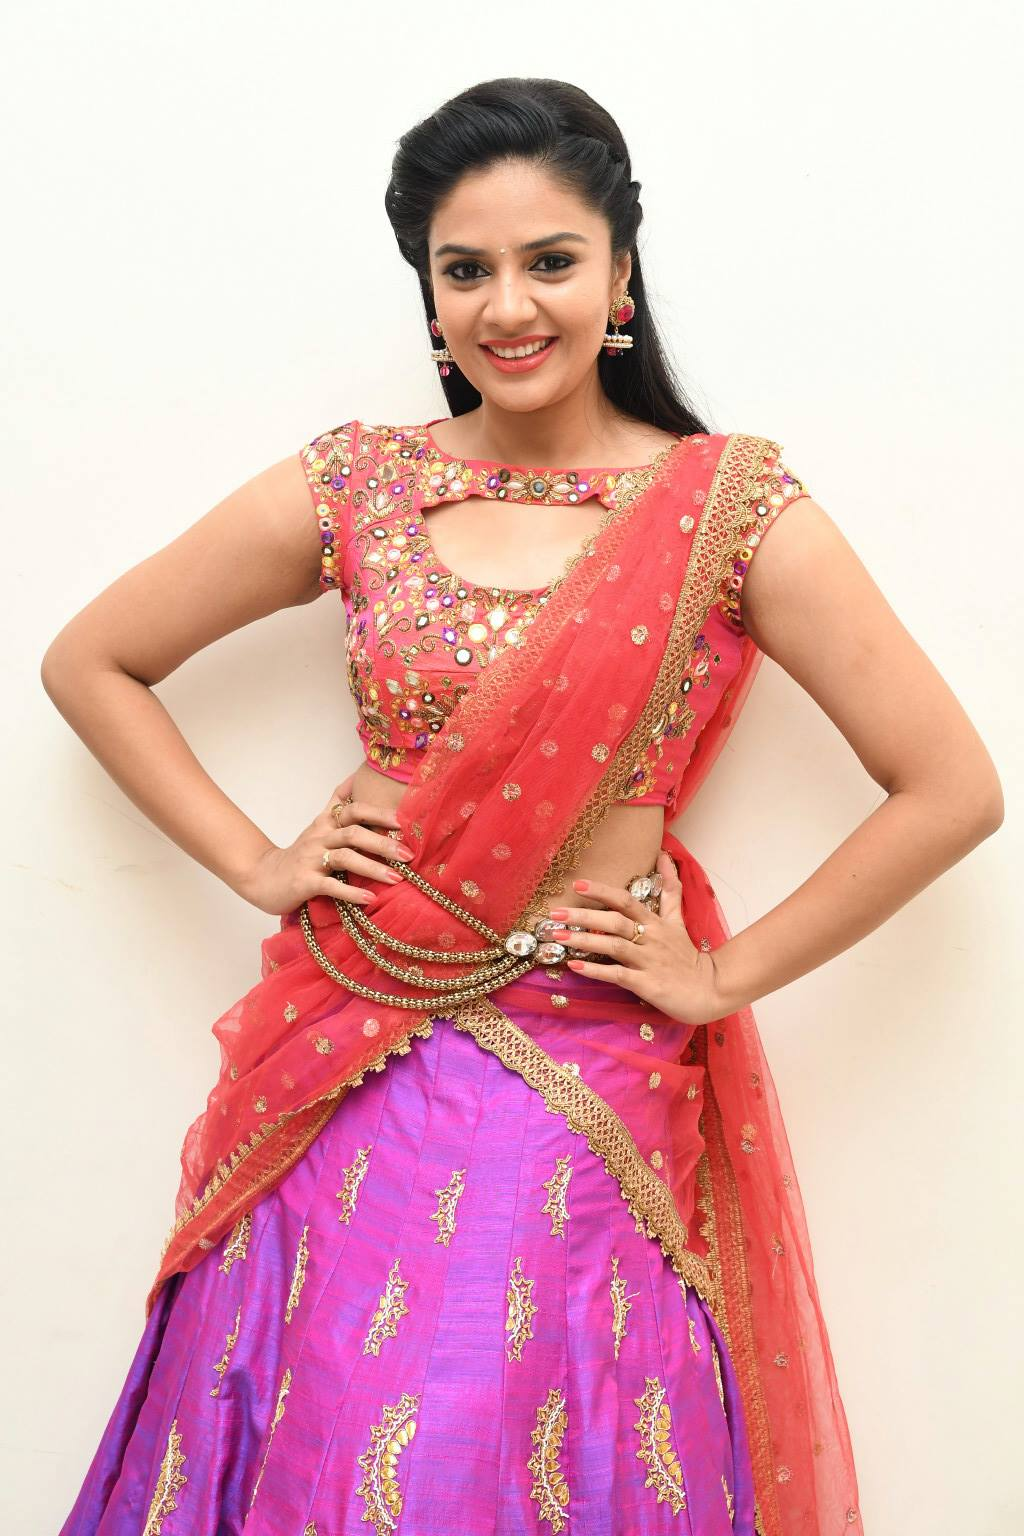 Telugu TV Anchor Hot Photos In Orange Half Saree Sreemukhi